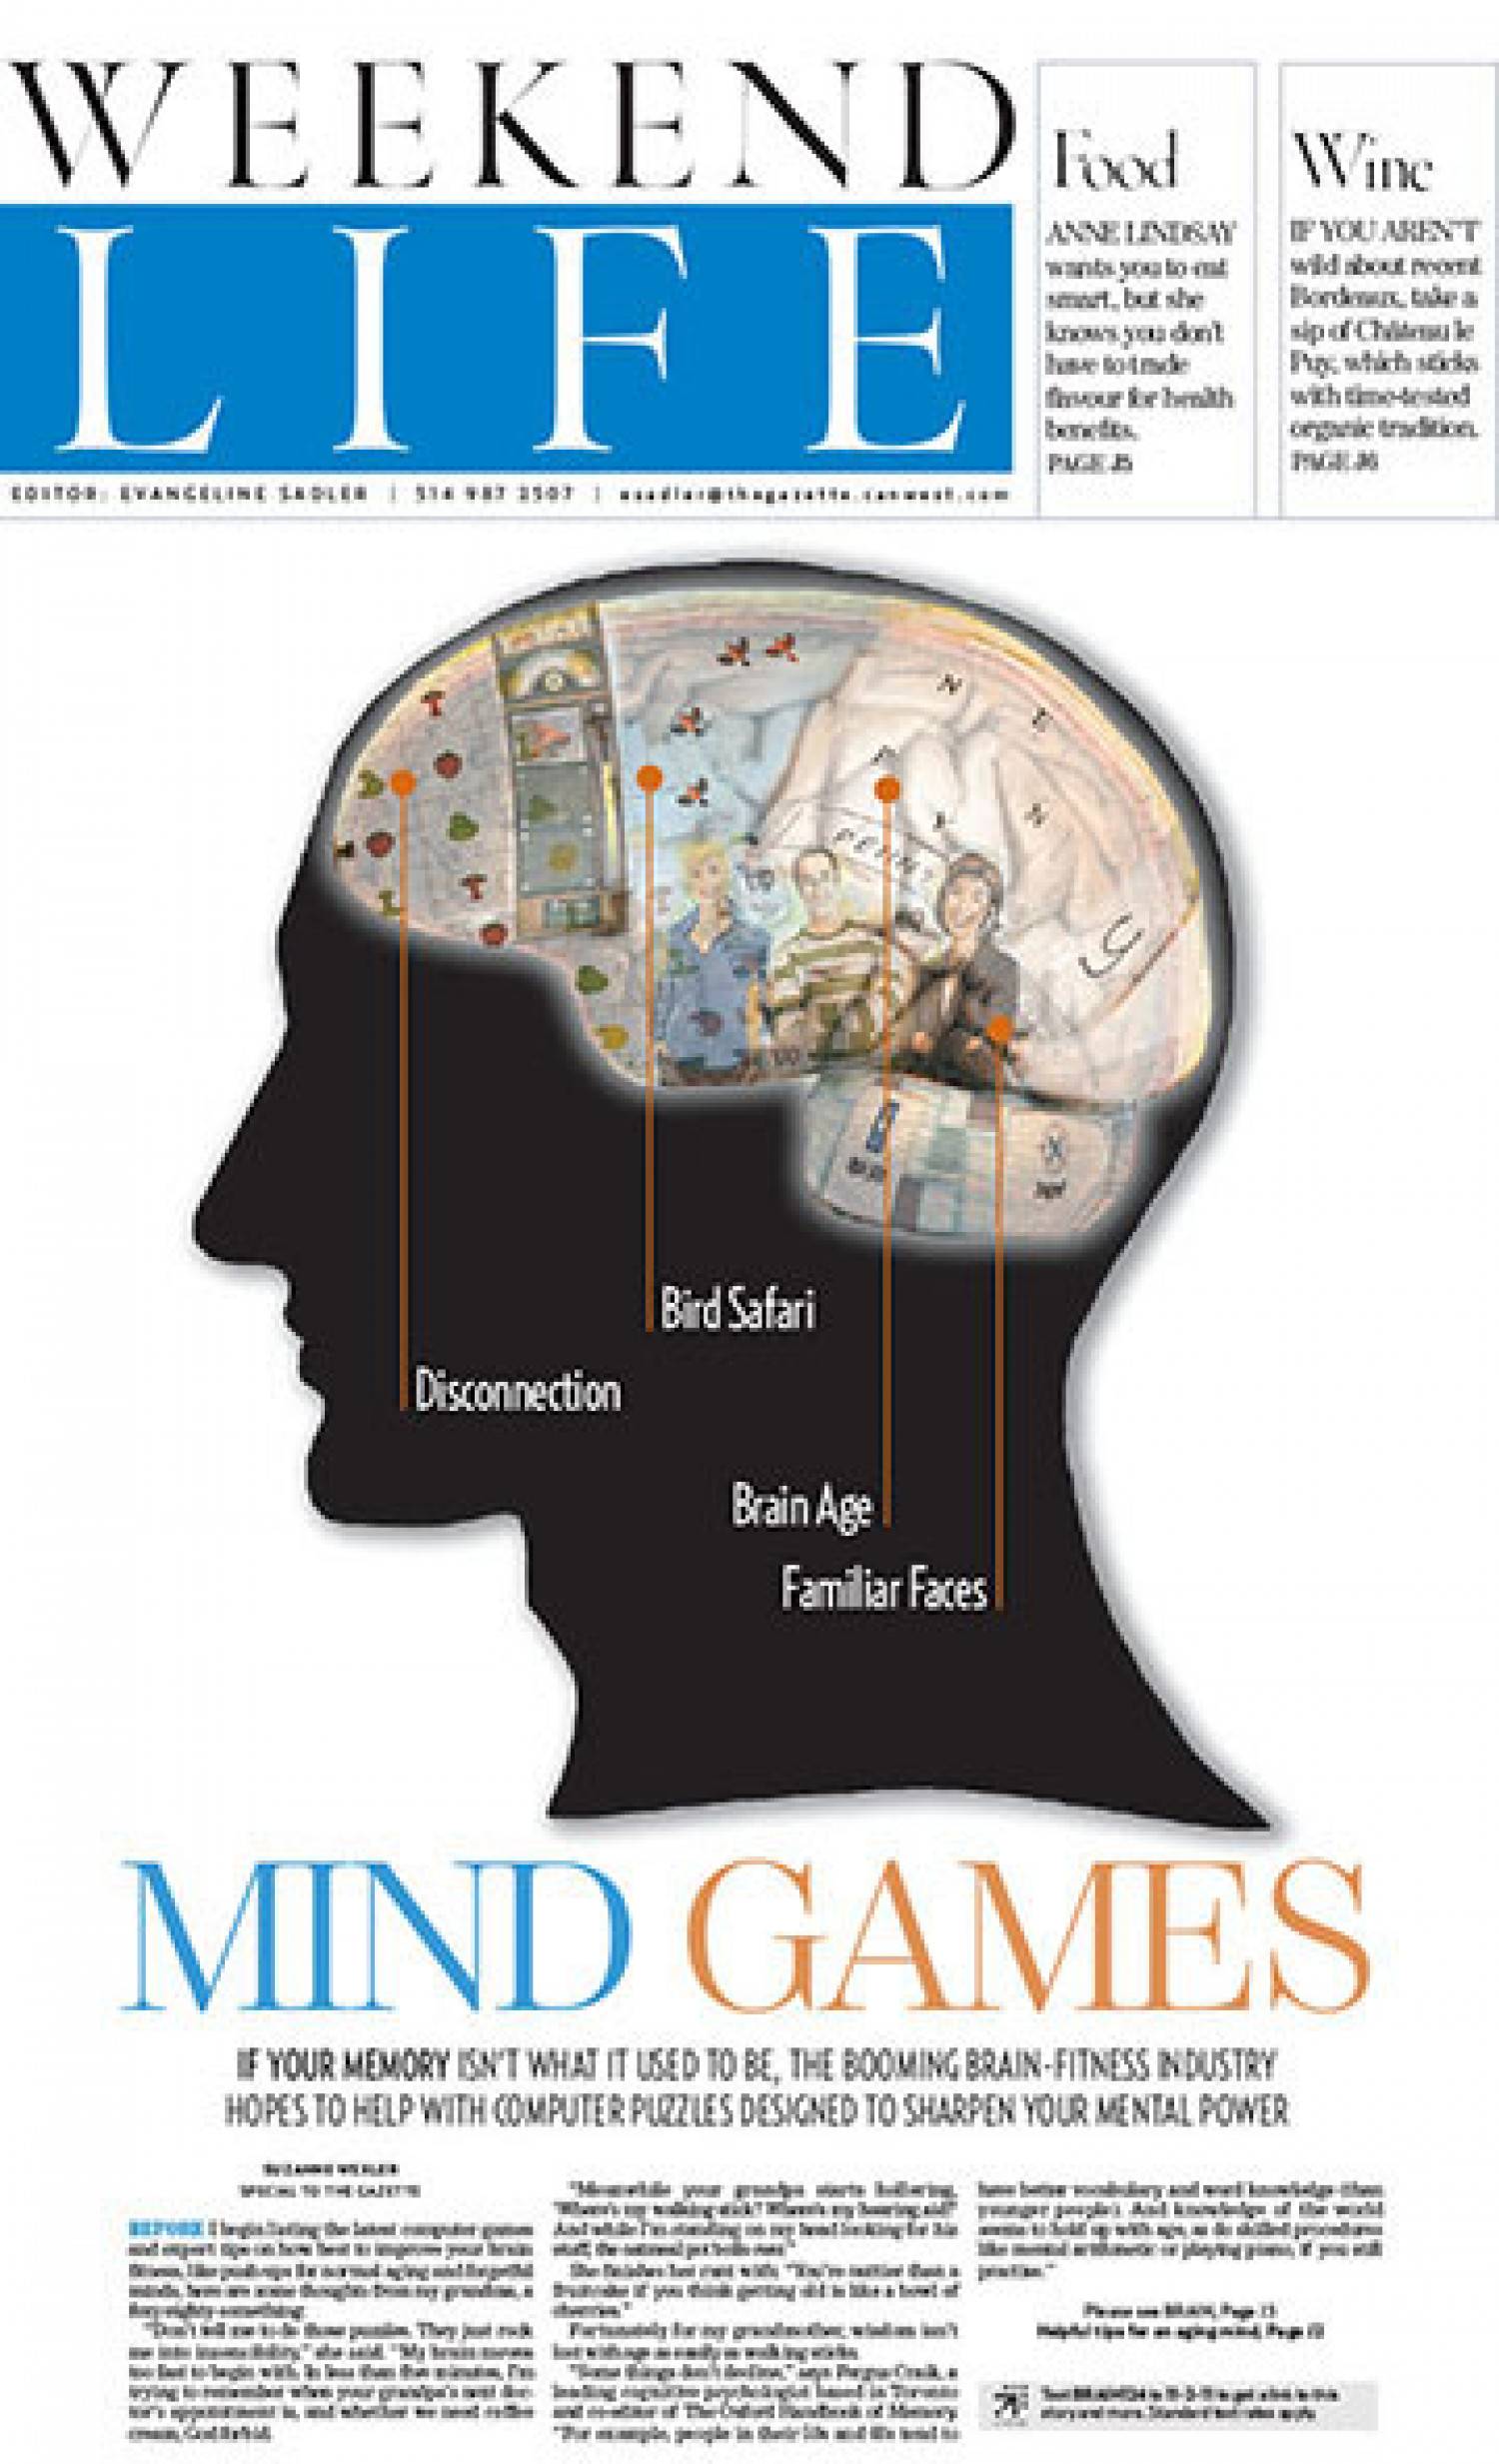 Mind Games Infographic